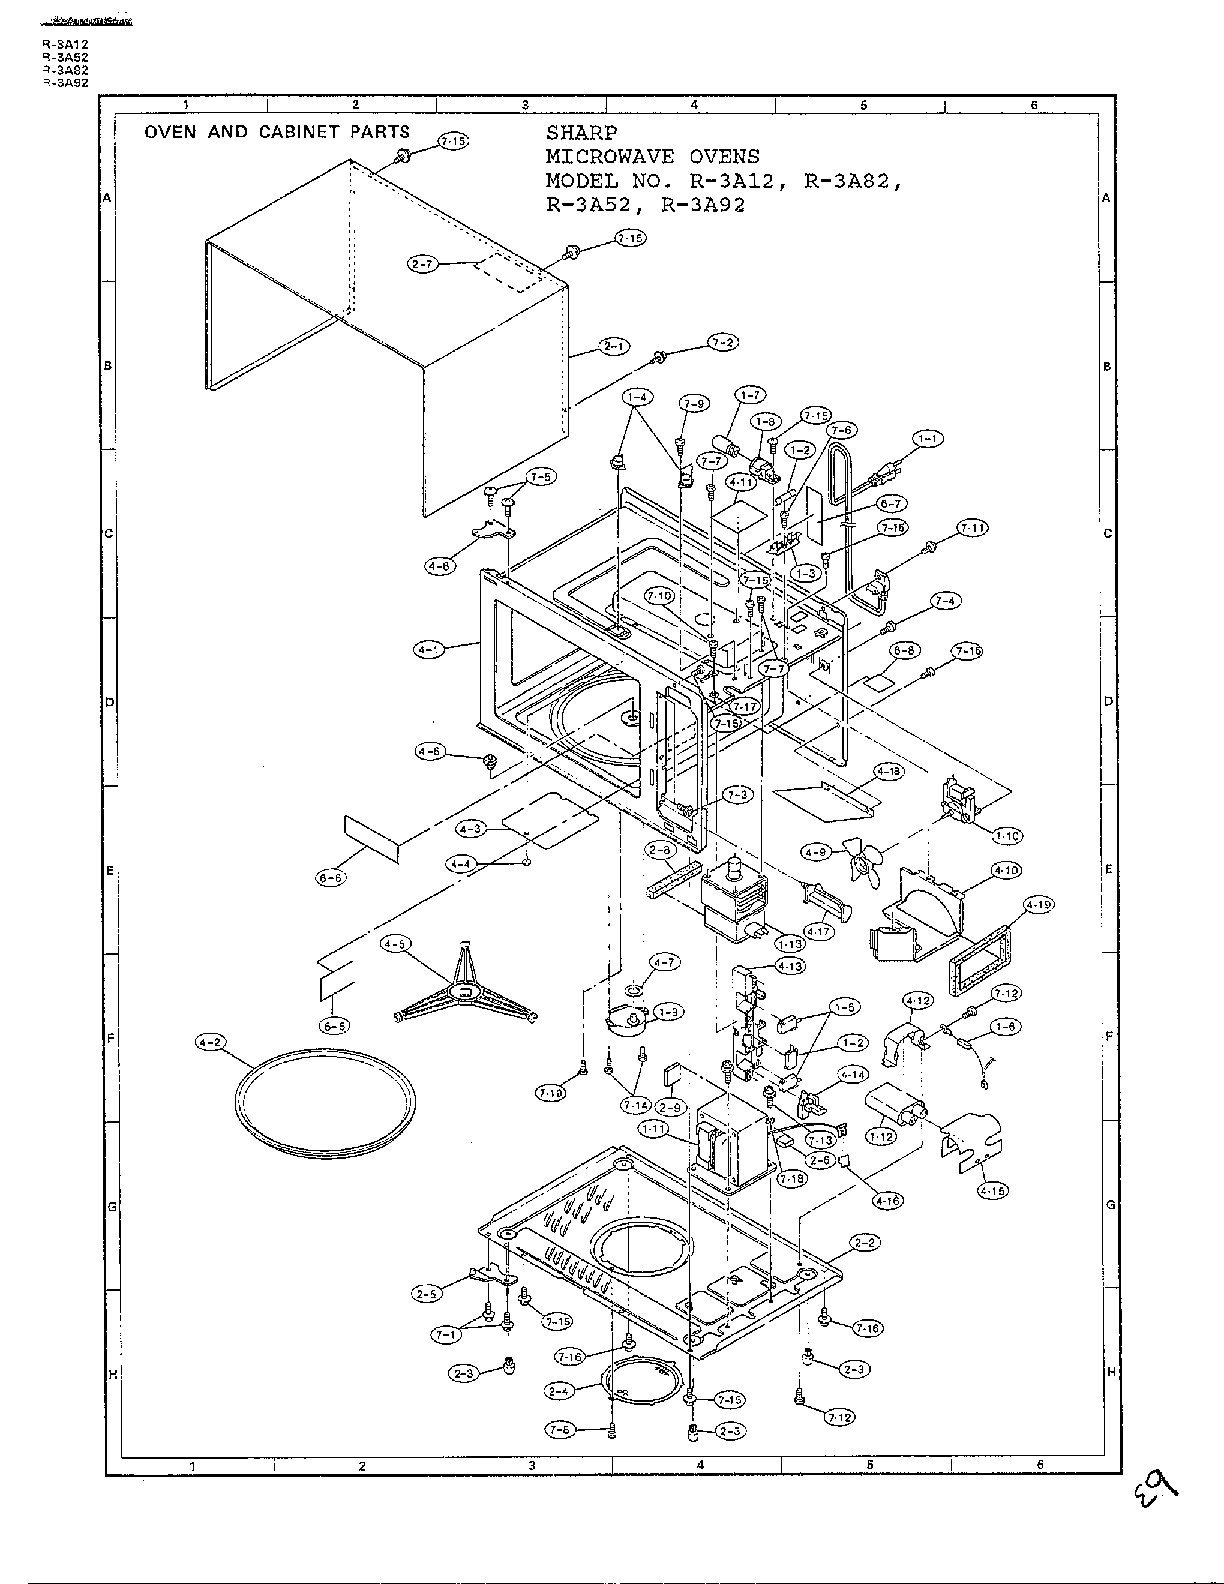 [WN_8472] Wiring Diagram Diagram And Parts List For Sharp